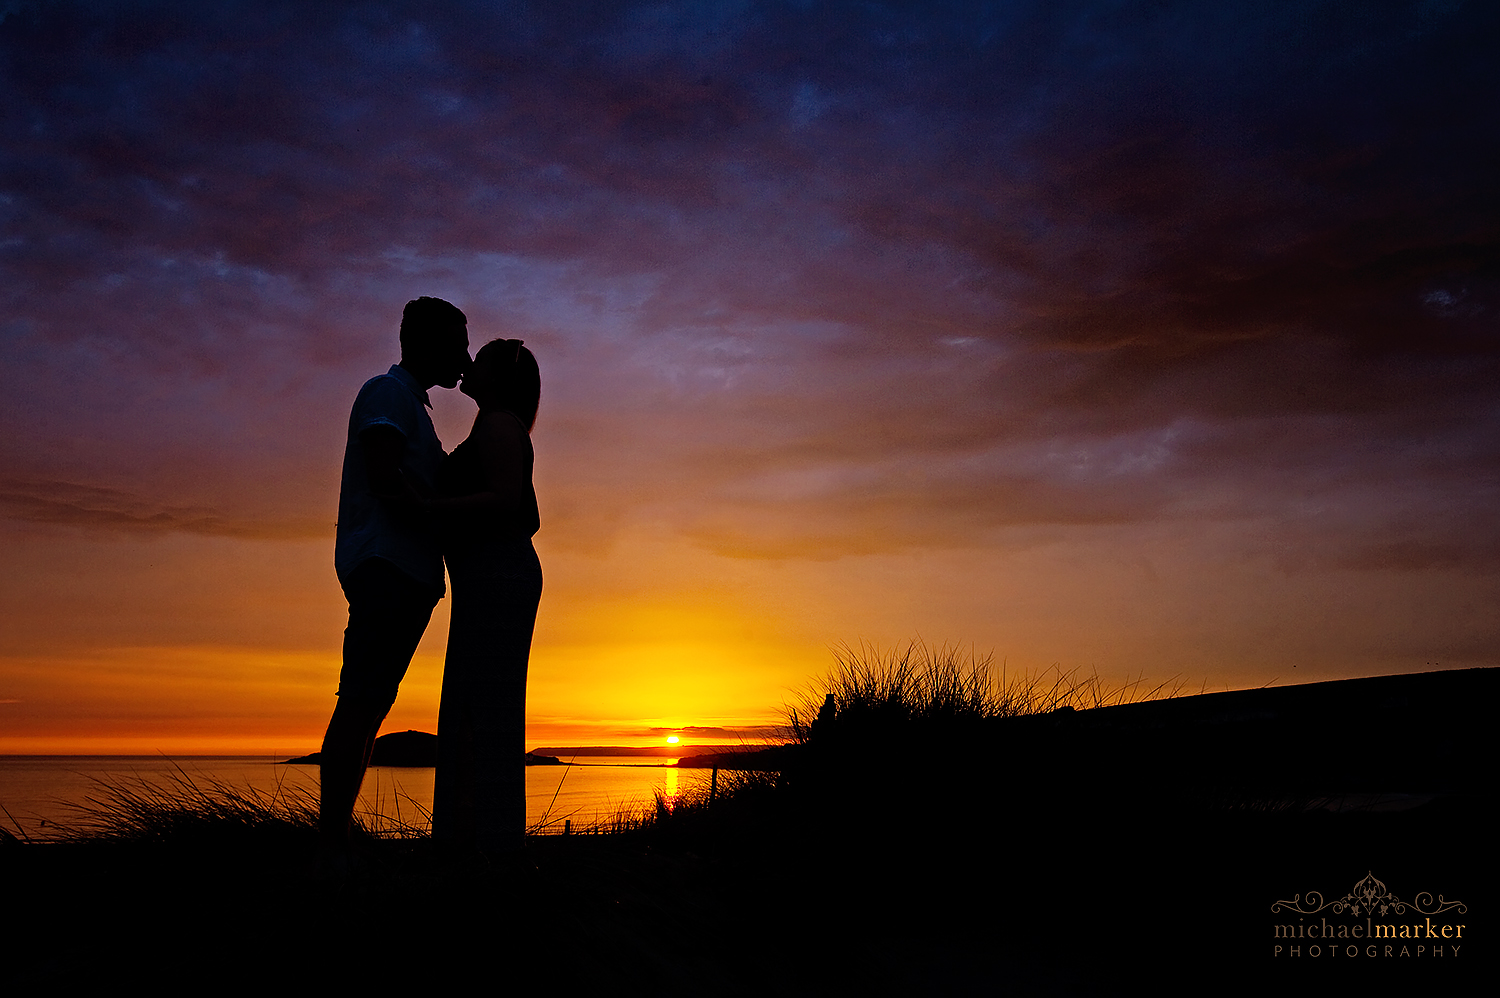 bigbury-sunset-engagement-portrait